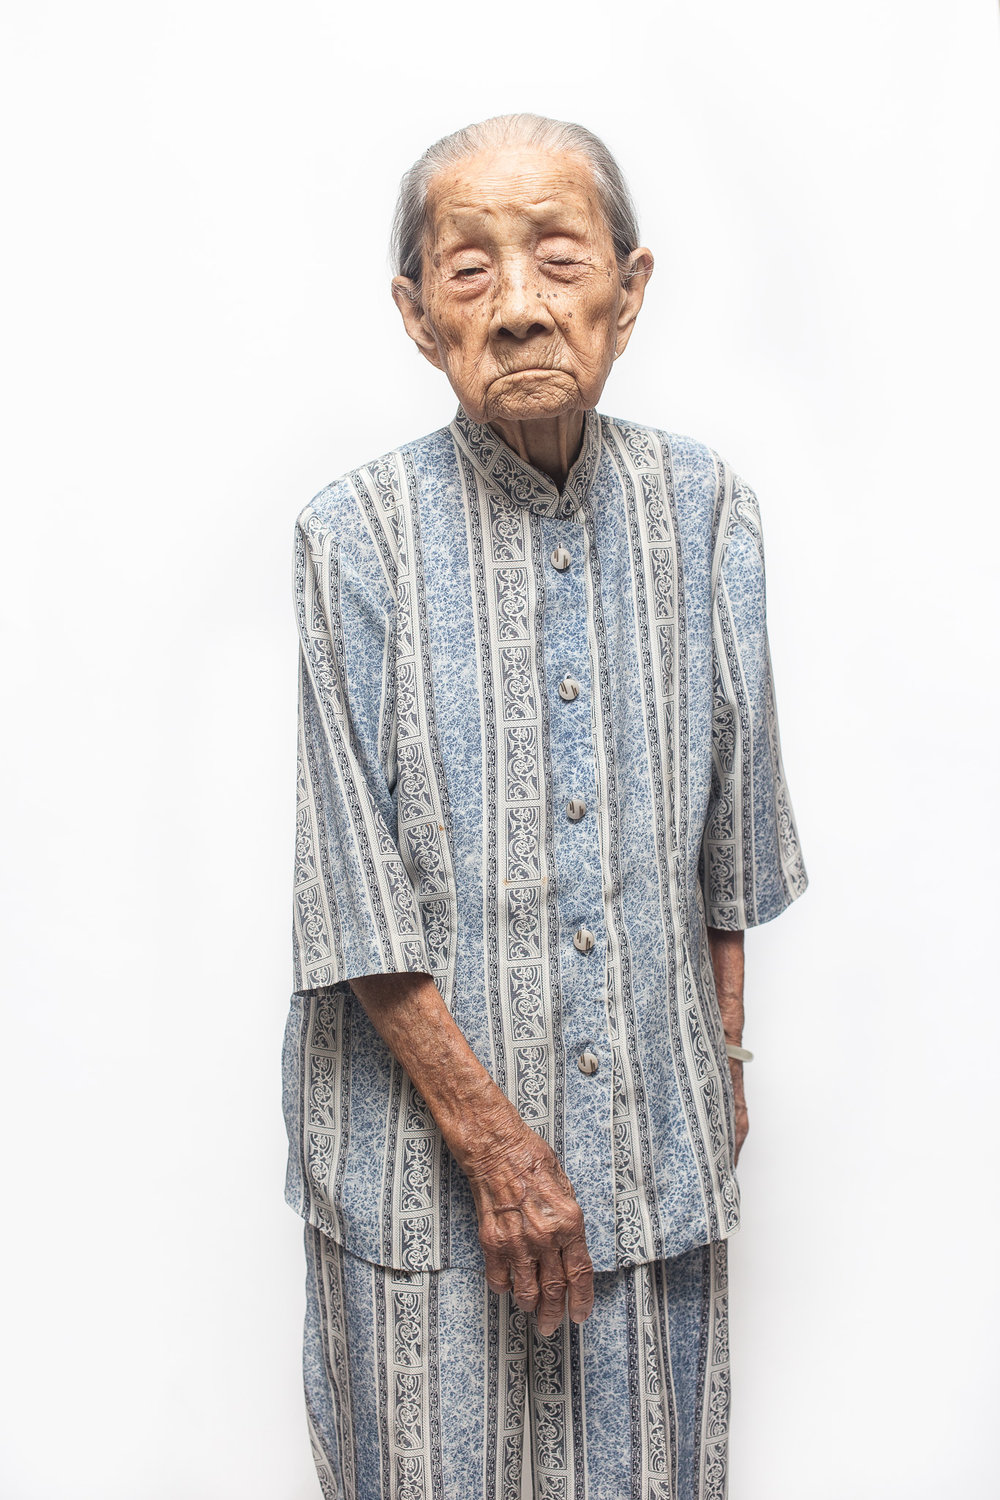 zainal-zainal-studio-centenarians-care-duke-nus-singapore-photographer-14.jpg